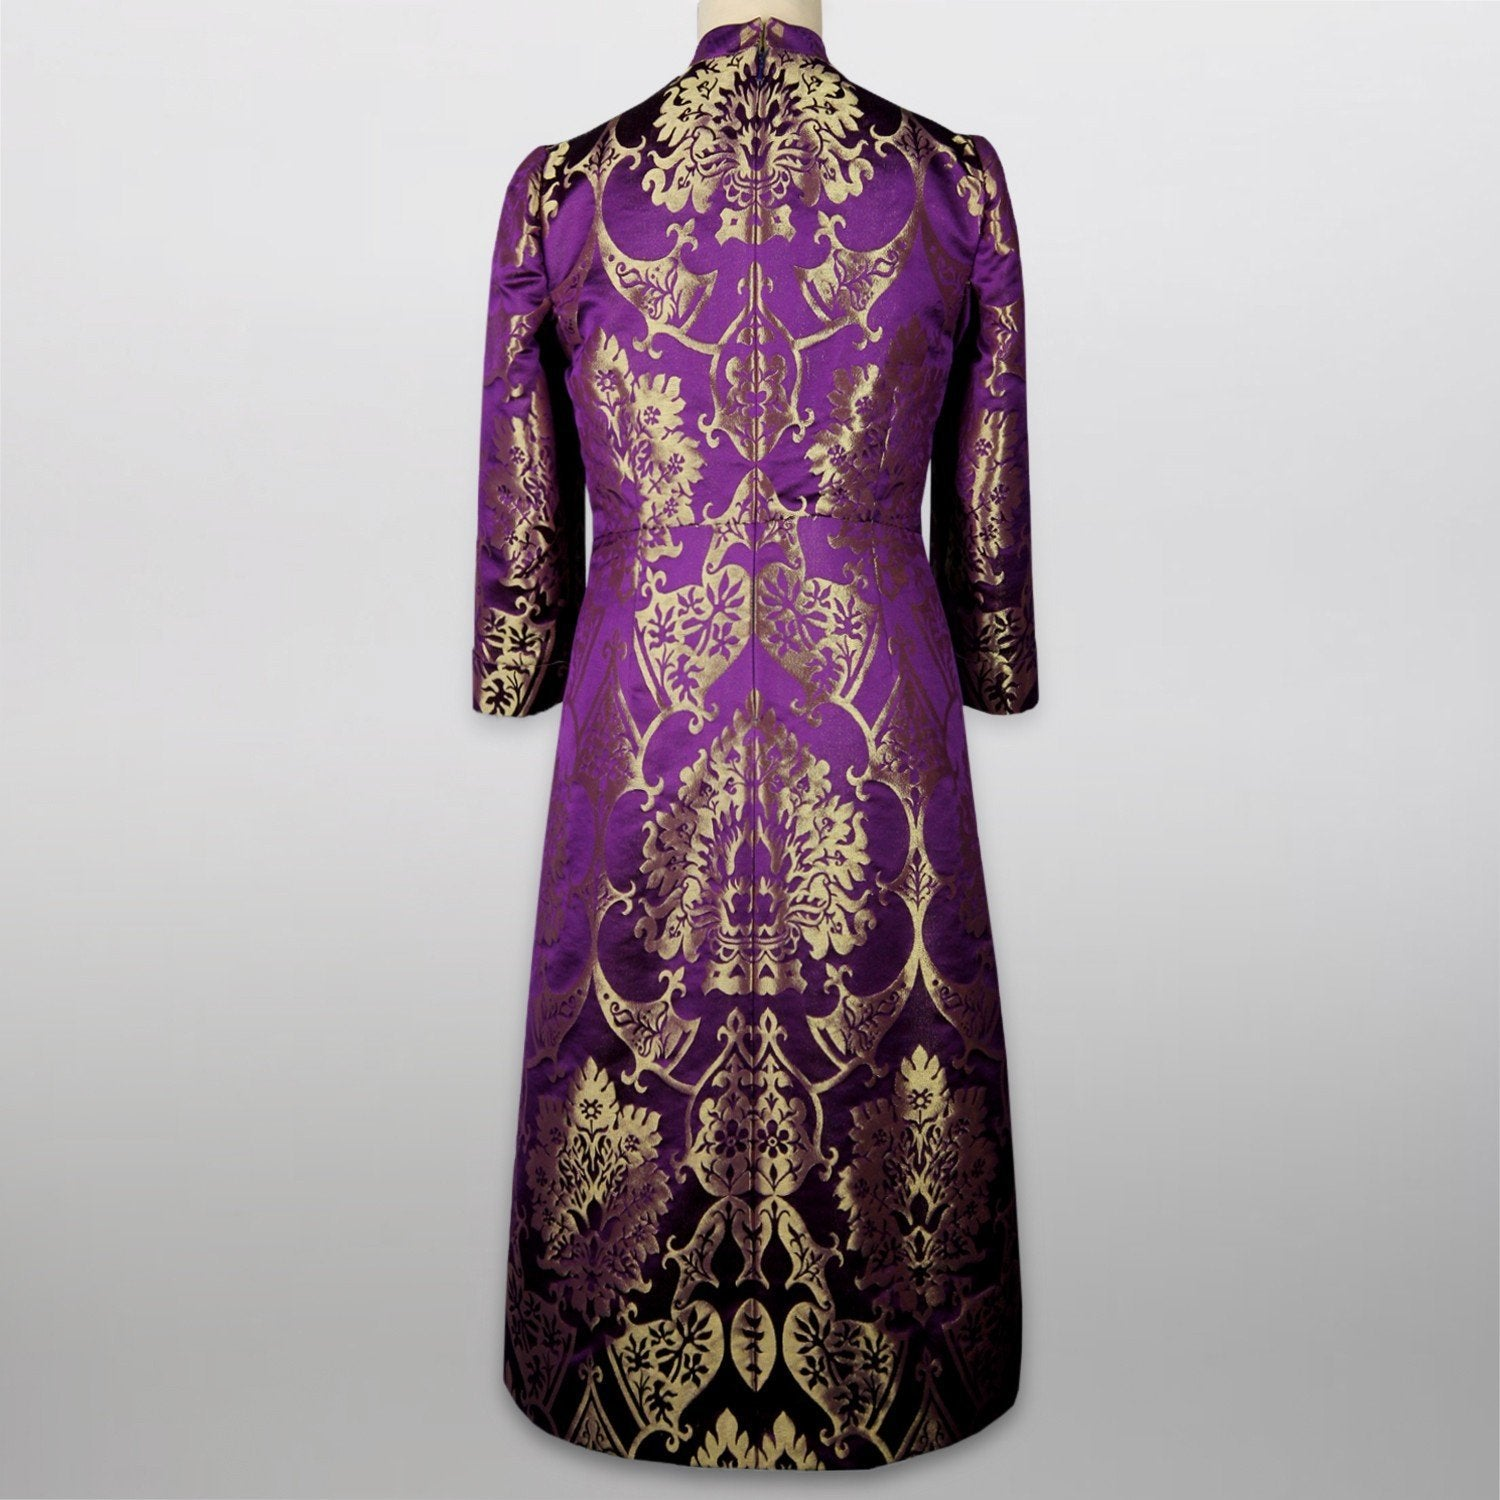 Victoria bespoke silk clergy dress - Watts & Co. (international)